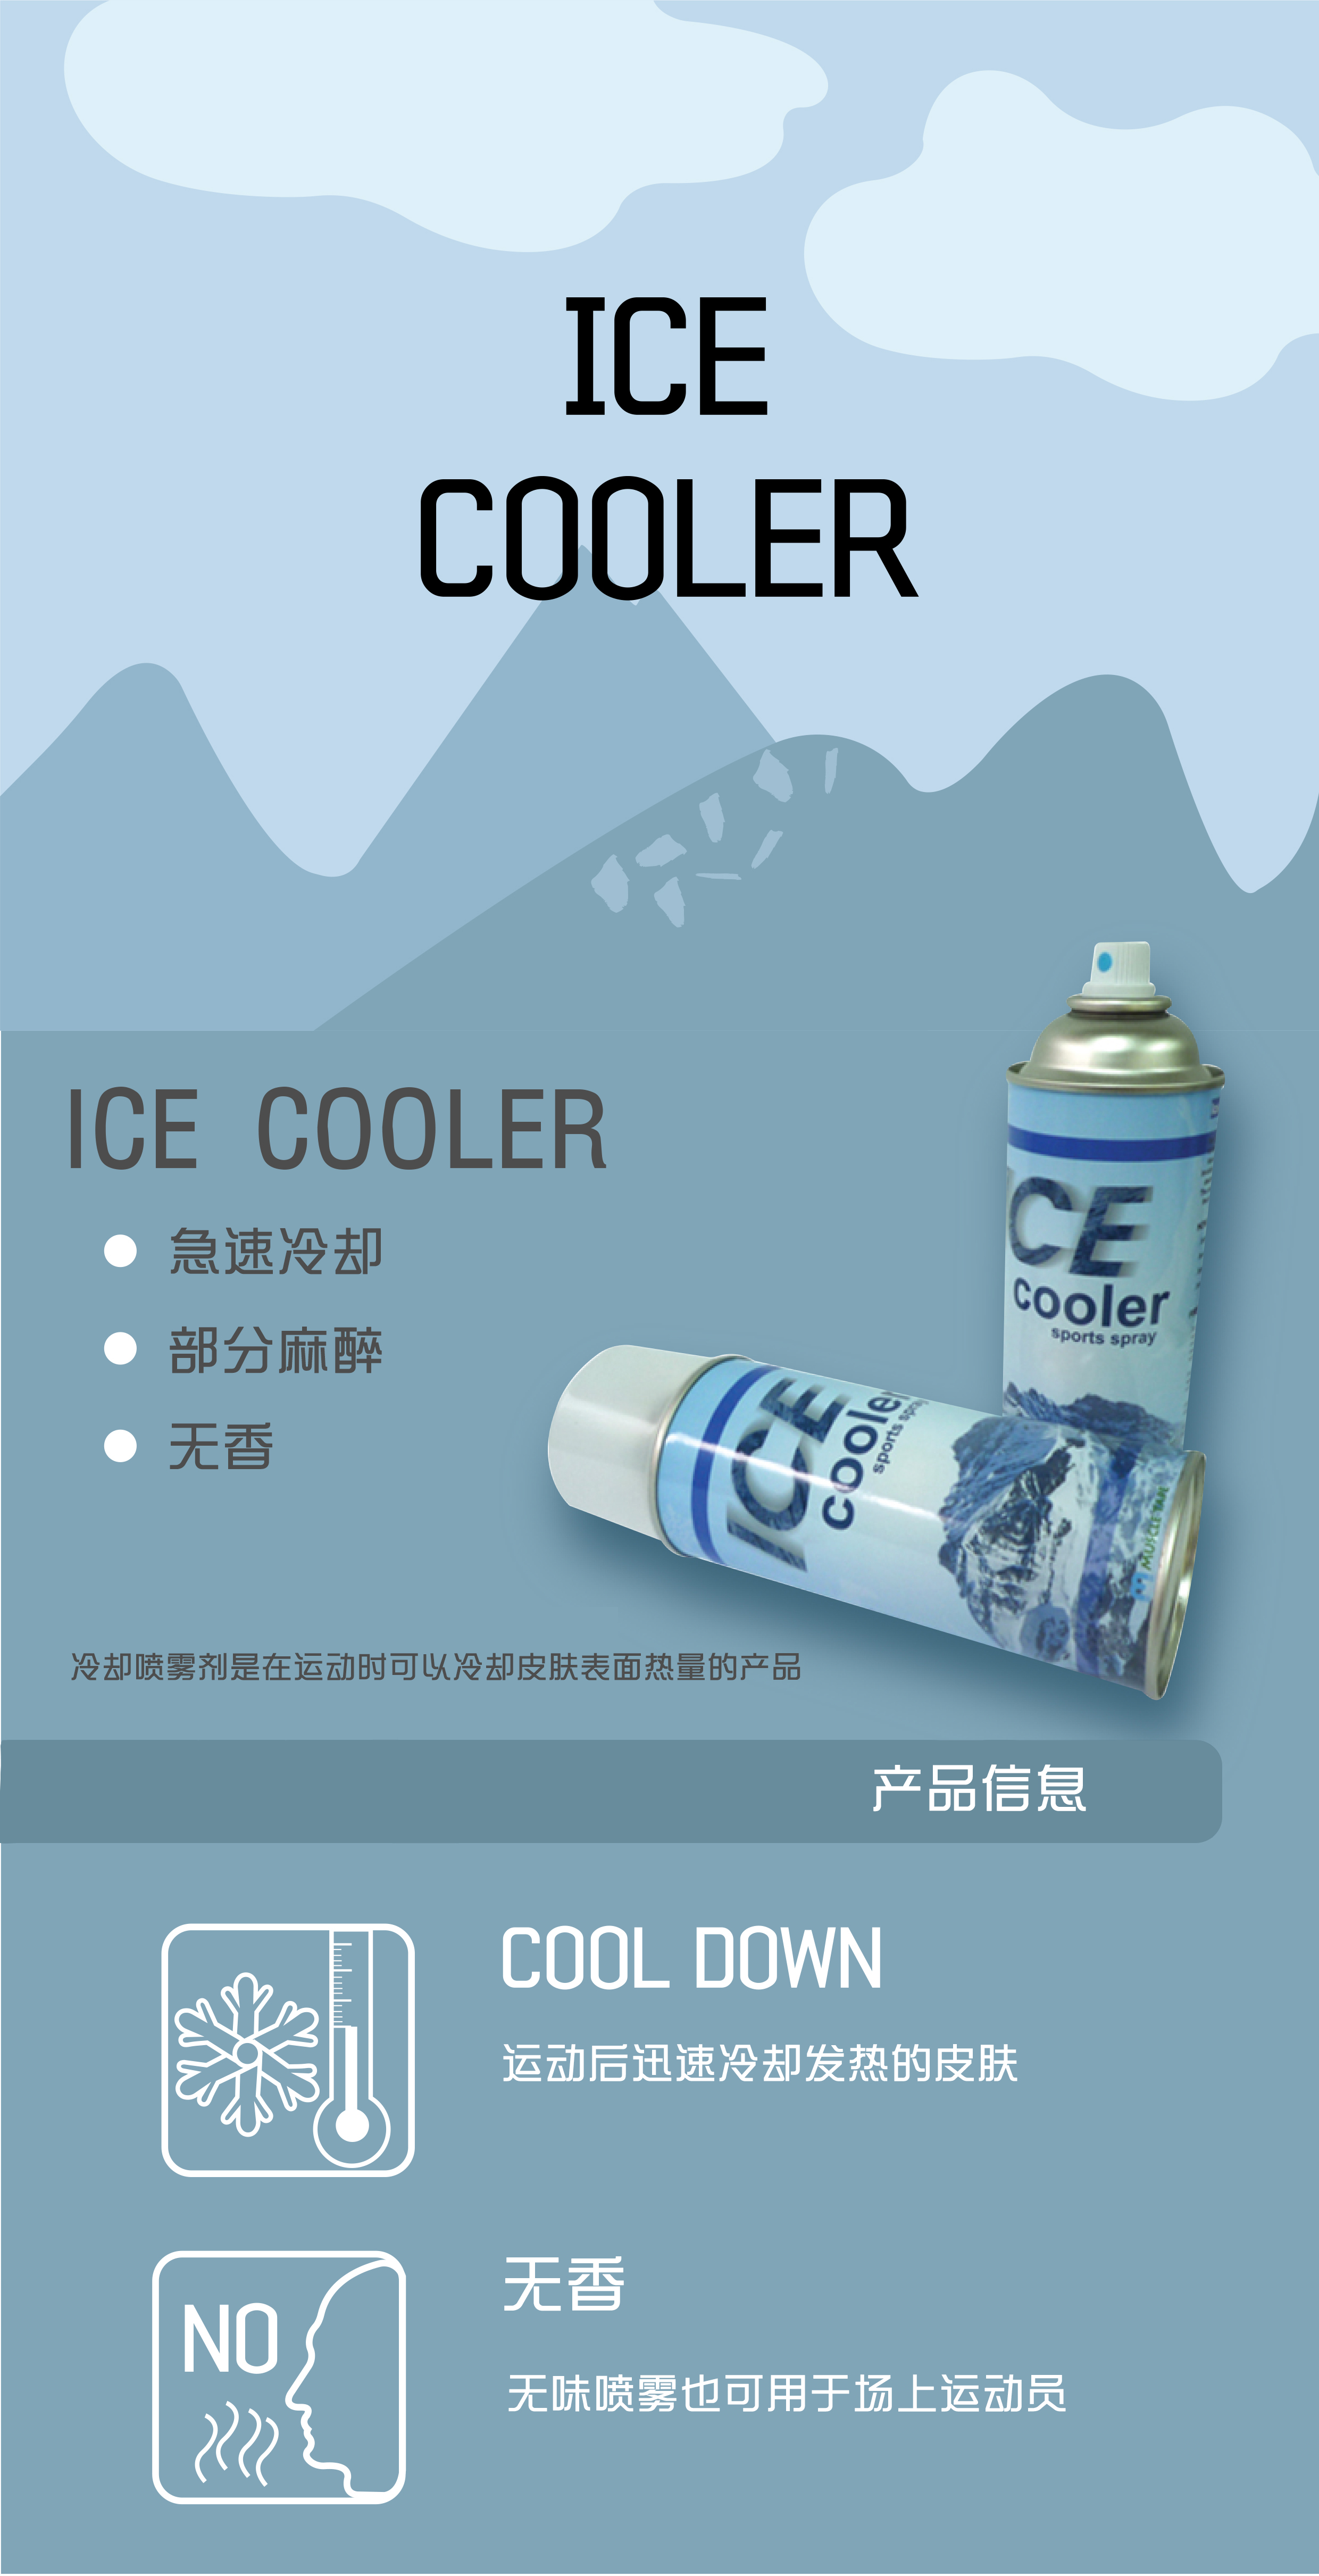 Chinese Ice cooler